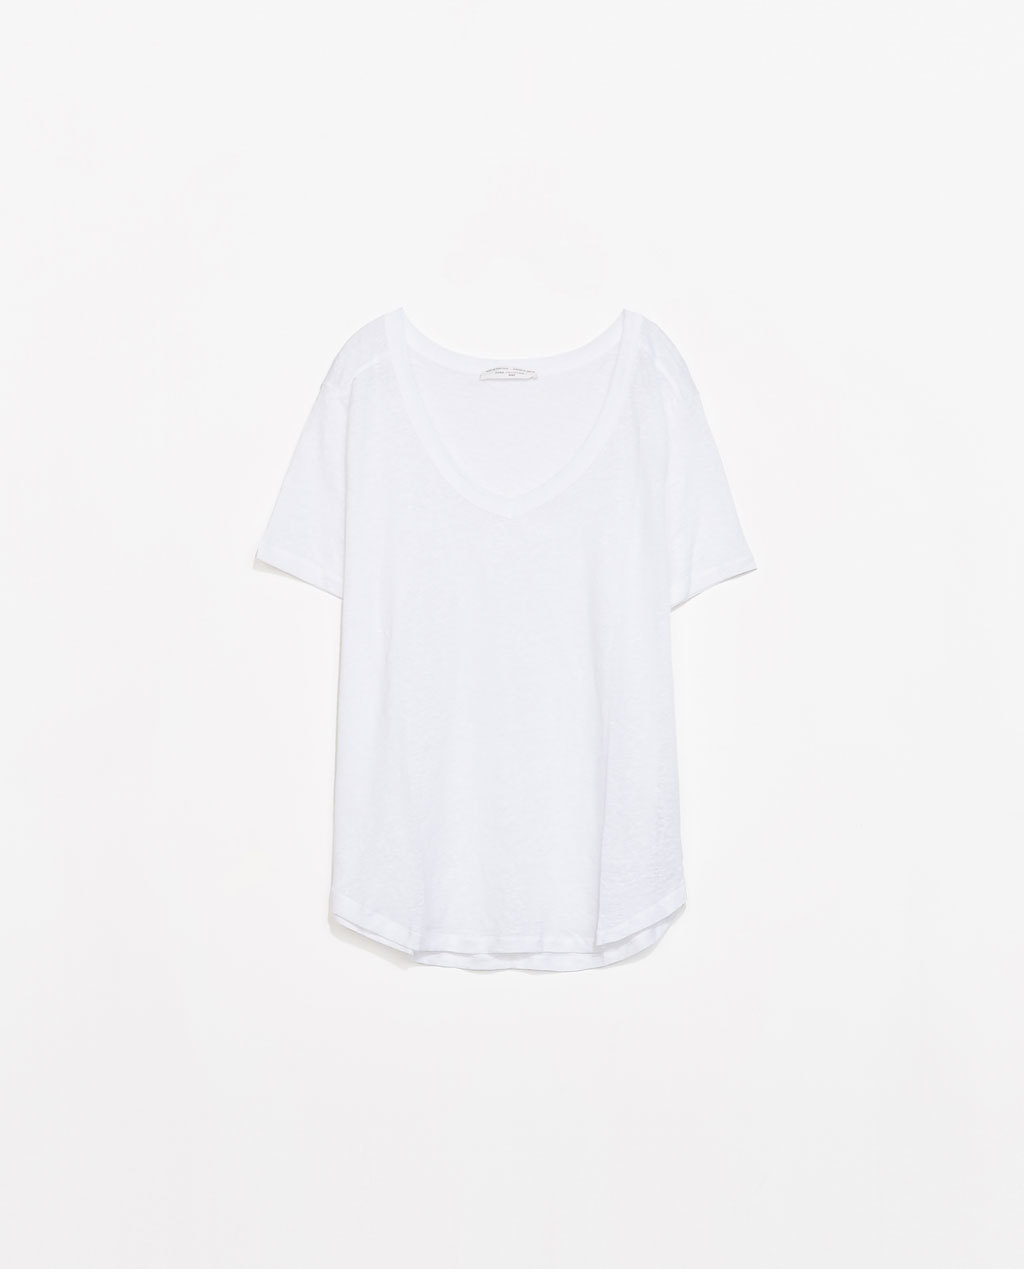 Linen T Shirt - pattern: plain; style: t-shirt; predominant colour: white; occasions: casual; length: standard; neckline: scoop; fibres: linen - 100%; fit: loose; sleeve length: short sleeve; sleeve style: standard; texture group: linen; pattern type: fabric; season: s/s 2014